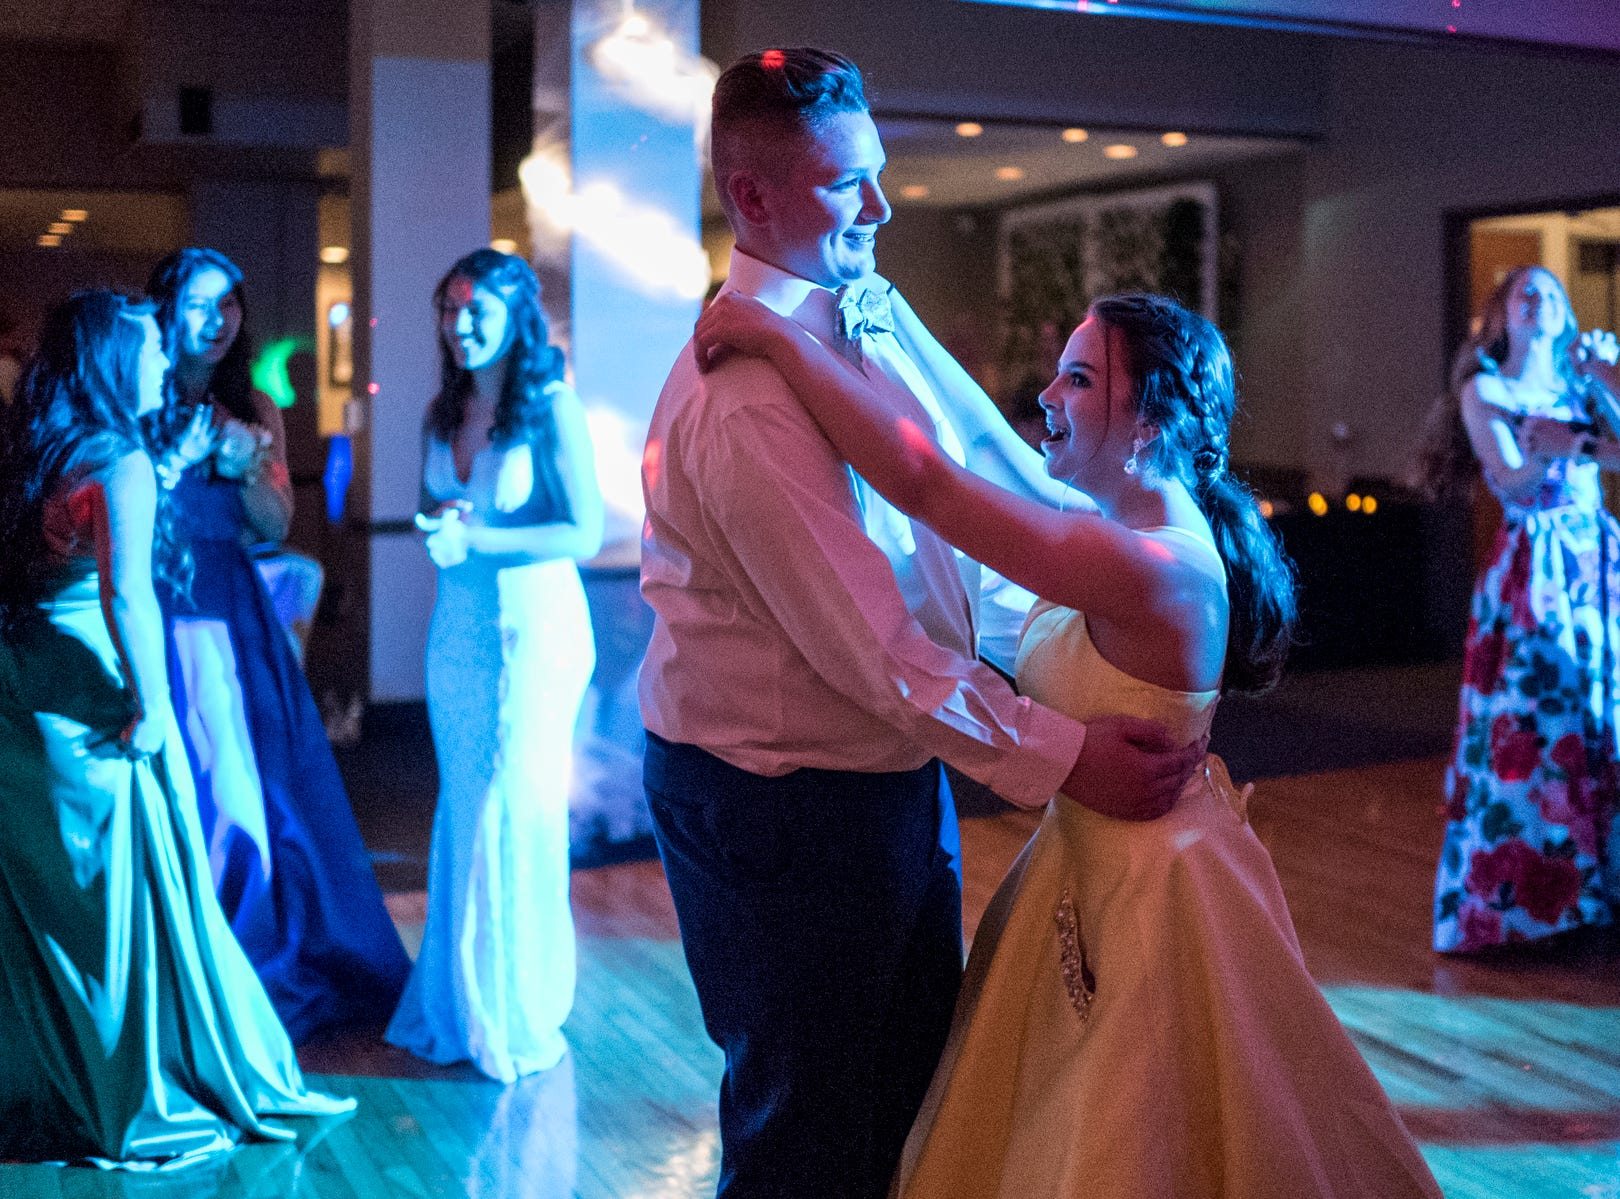 Evansville Day School students slow dance during their prom held at the Hadi Shrine Banquet Hall in downtown Evansville, Ind., Saturday, April 27, 2019.